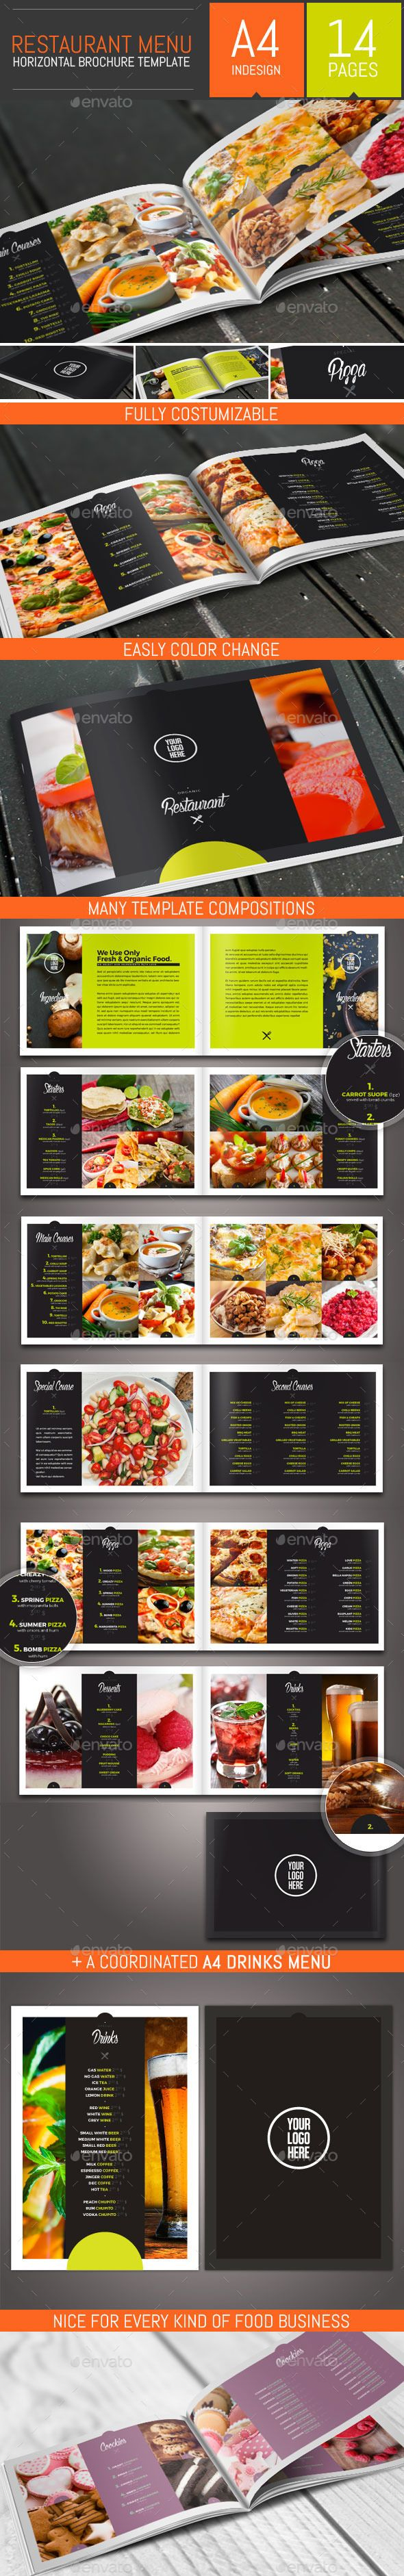 Food Restaurant Menu Brochure / BiFold Template — JPG Image #restaurant #wine • Available here → https://graphicriver.net/item/food-restaurant-menu-brochure-bifold-template/13161264?ref=pxcr